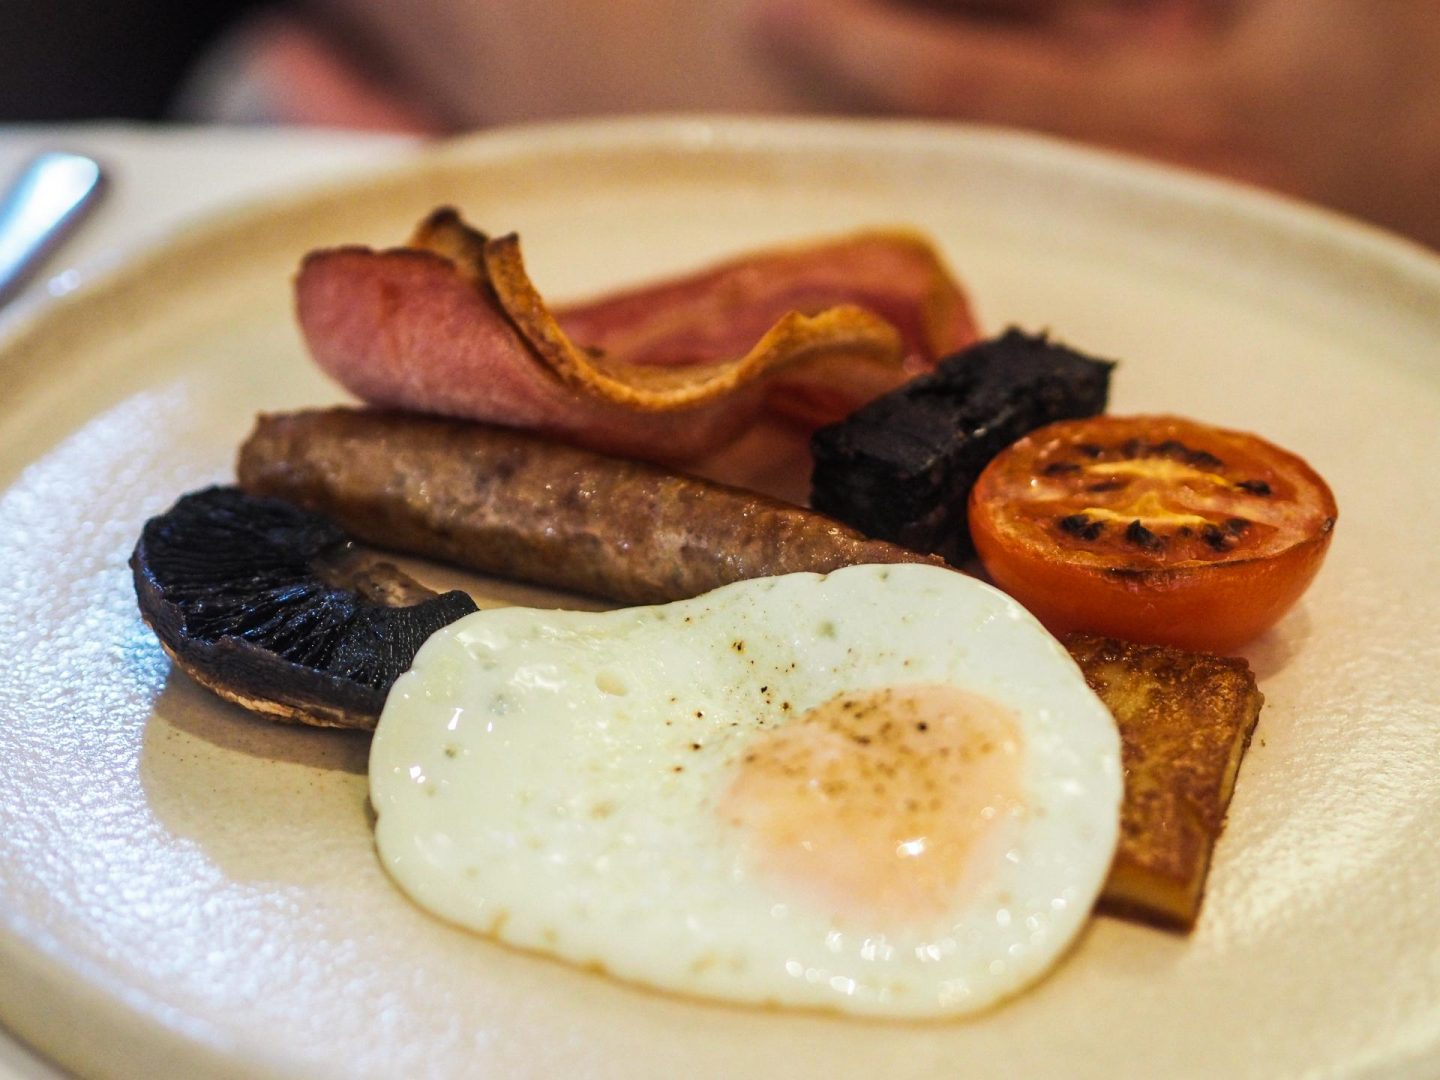 Full English Breakfast at Hipping Hall, Luxury Hotel Review - Rachel Nicole UK Travel Blogger